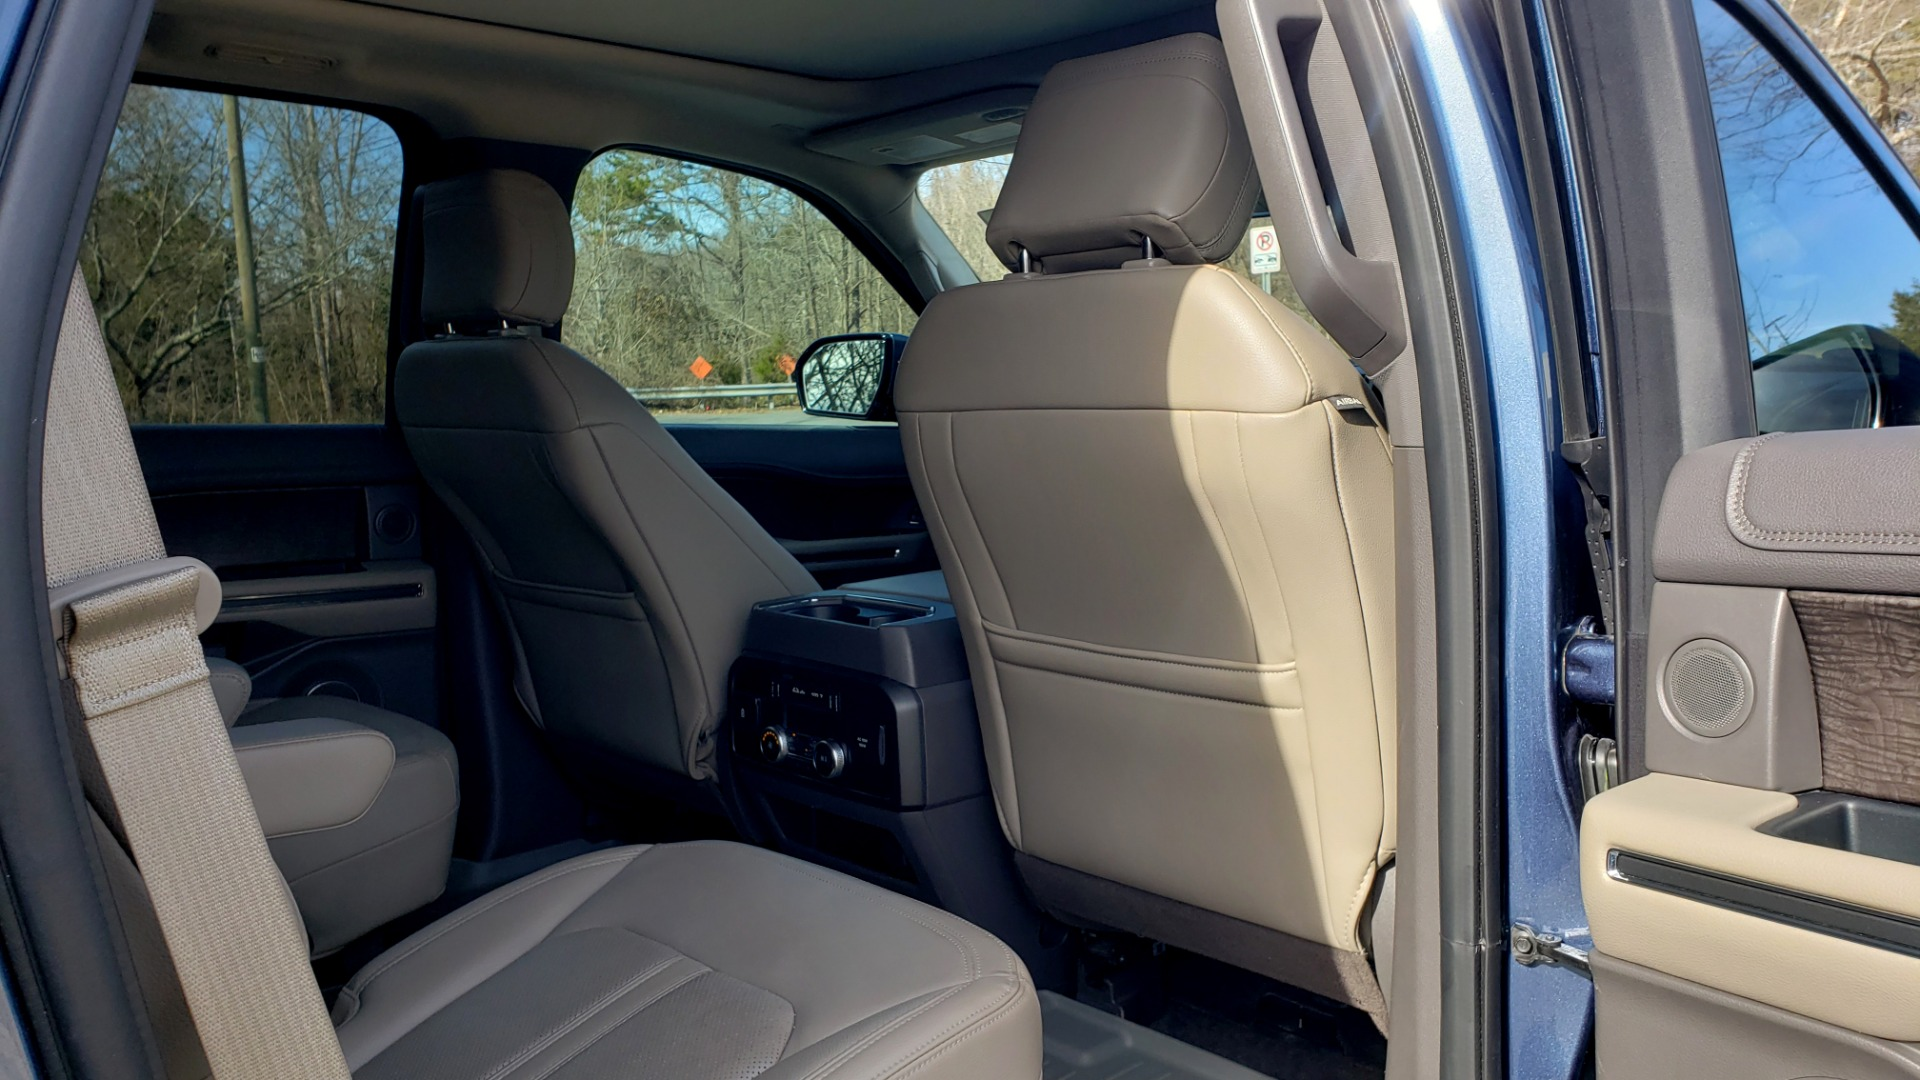 Used 2018 Ford EXPEDITION LIMITED 4X4 / NAV / PANO-ROOF / 3-ROW / DRVR ASST / REARVIEW for sale Sold at Formula Imports in Charlotte NC 28227 89